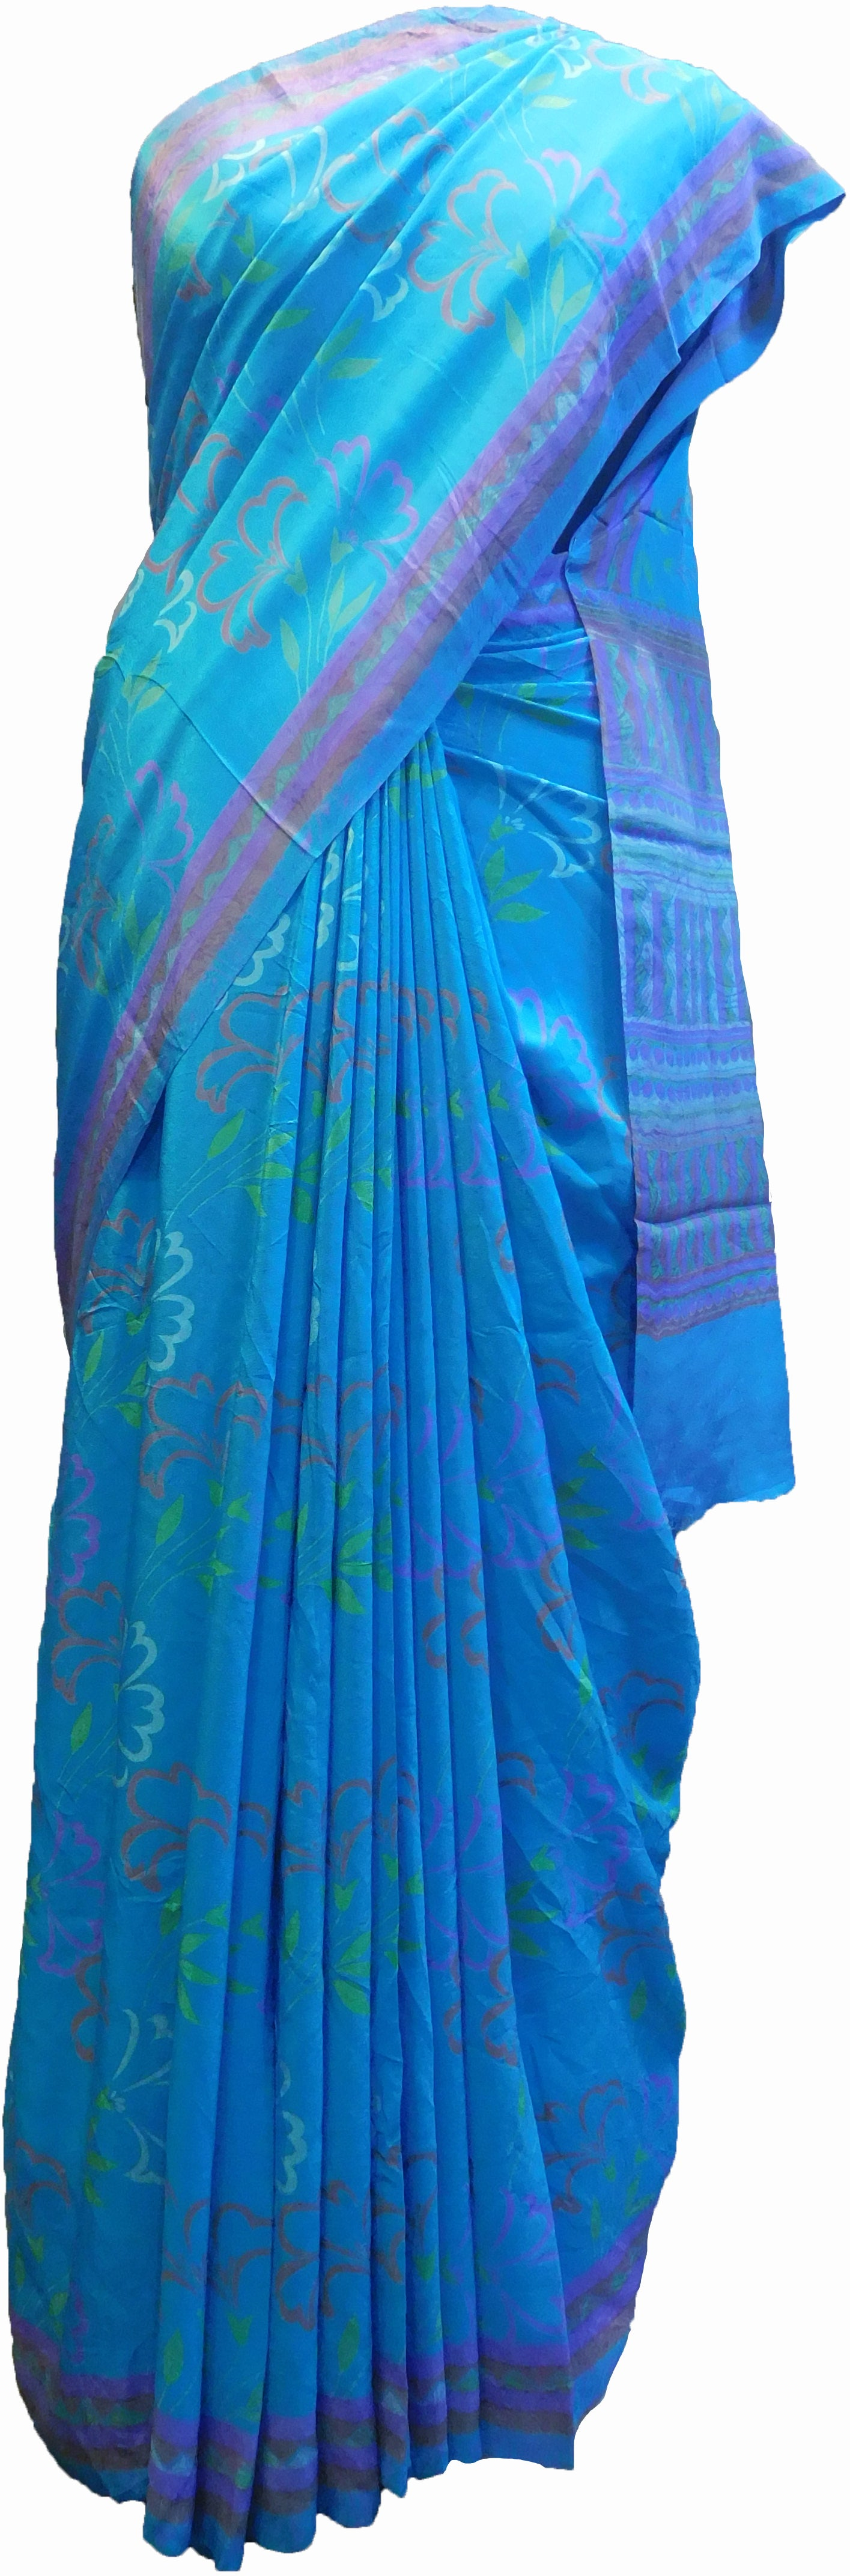 SMSAREE Multi Color Designer Wedding Partywear Pure Crepe Hand Brush Print Hand Embroidery Work Bridal Saree Sari With Blouse Piece RP344